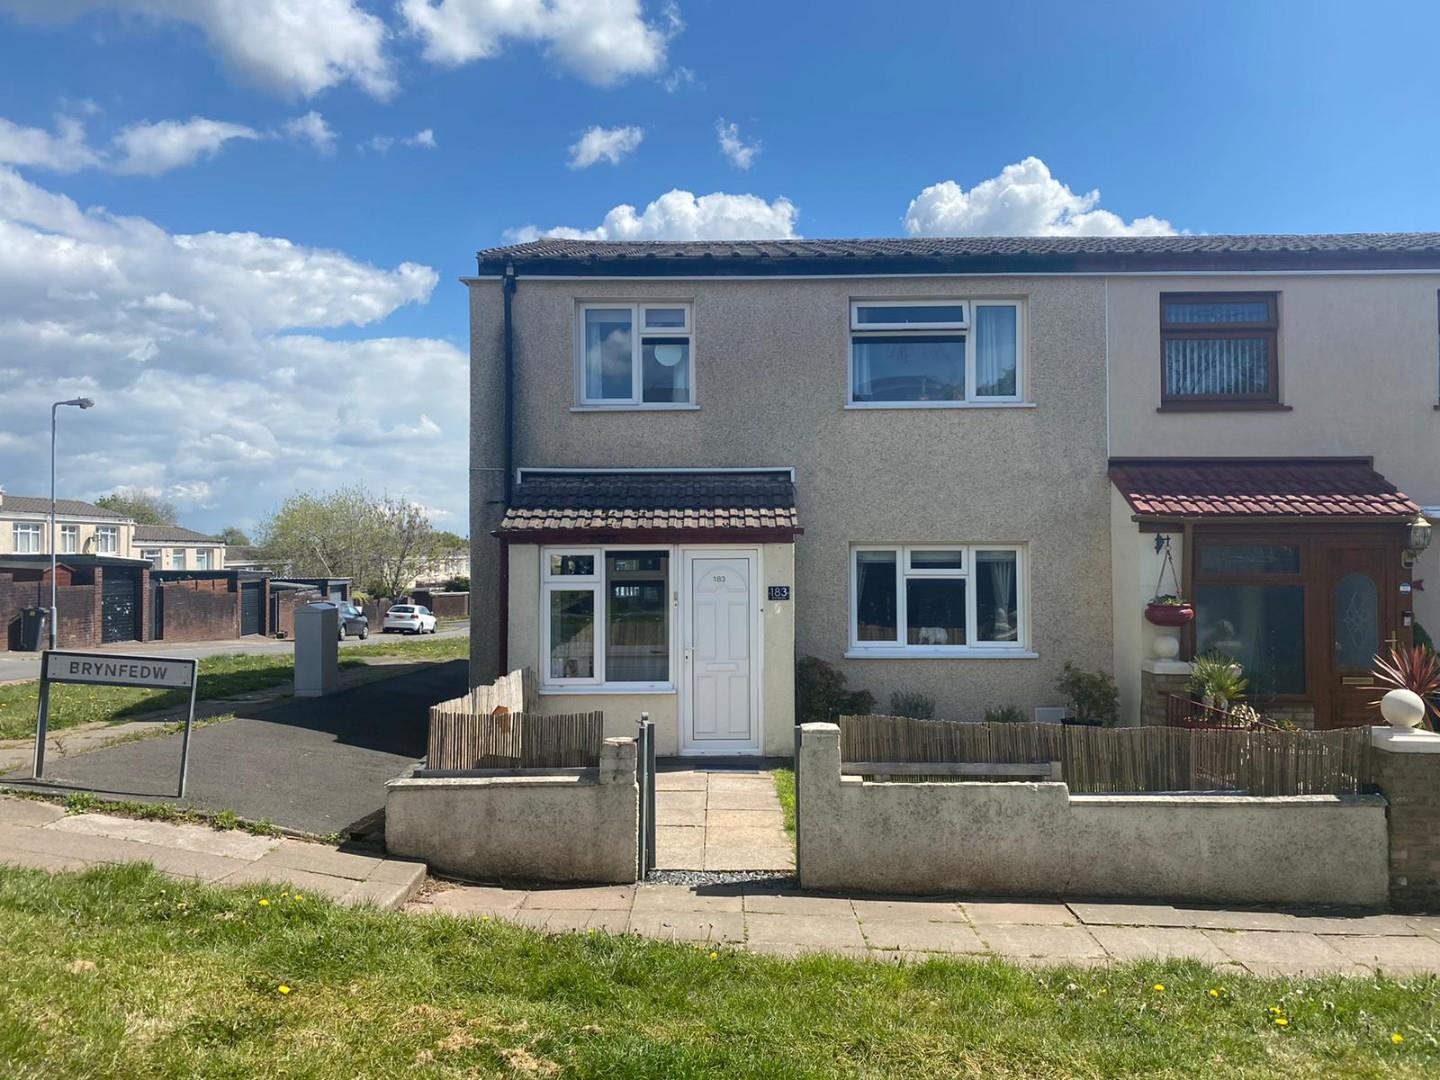 3 bed end of terrace house for sale in Brynfedw, Cardiff, CF23